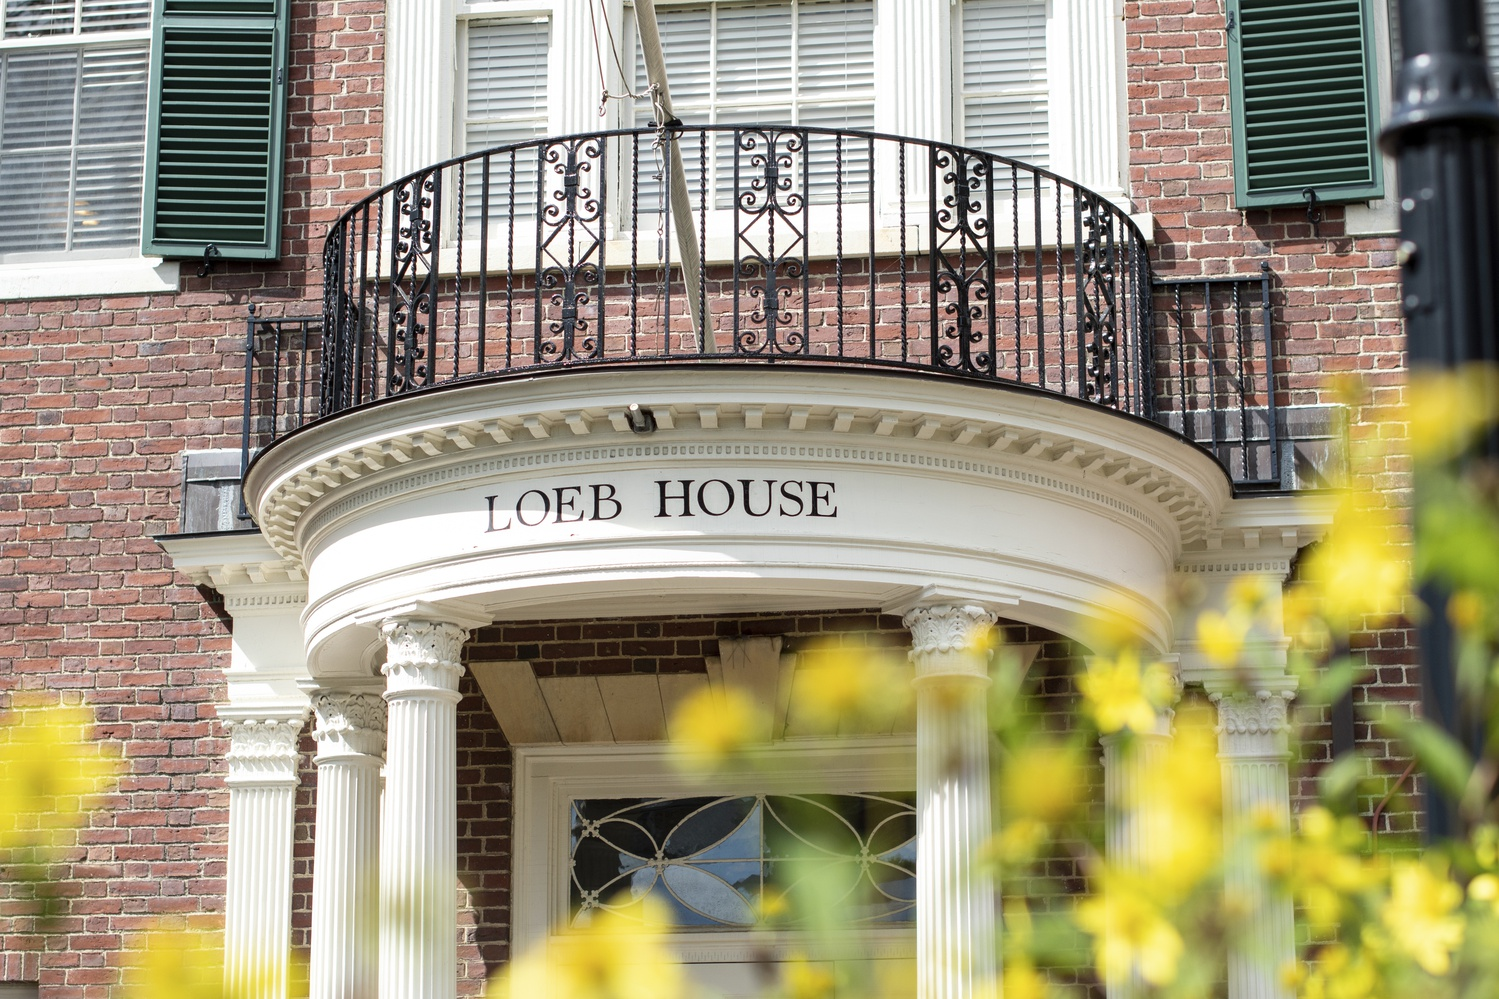 Loeb House is located at 17 Quincy Street and was the former home of Harvard Presidents. Today it houses Harvard's Governing Boards and their administrative offices.